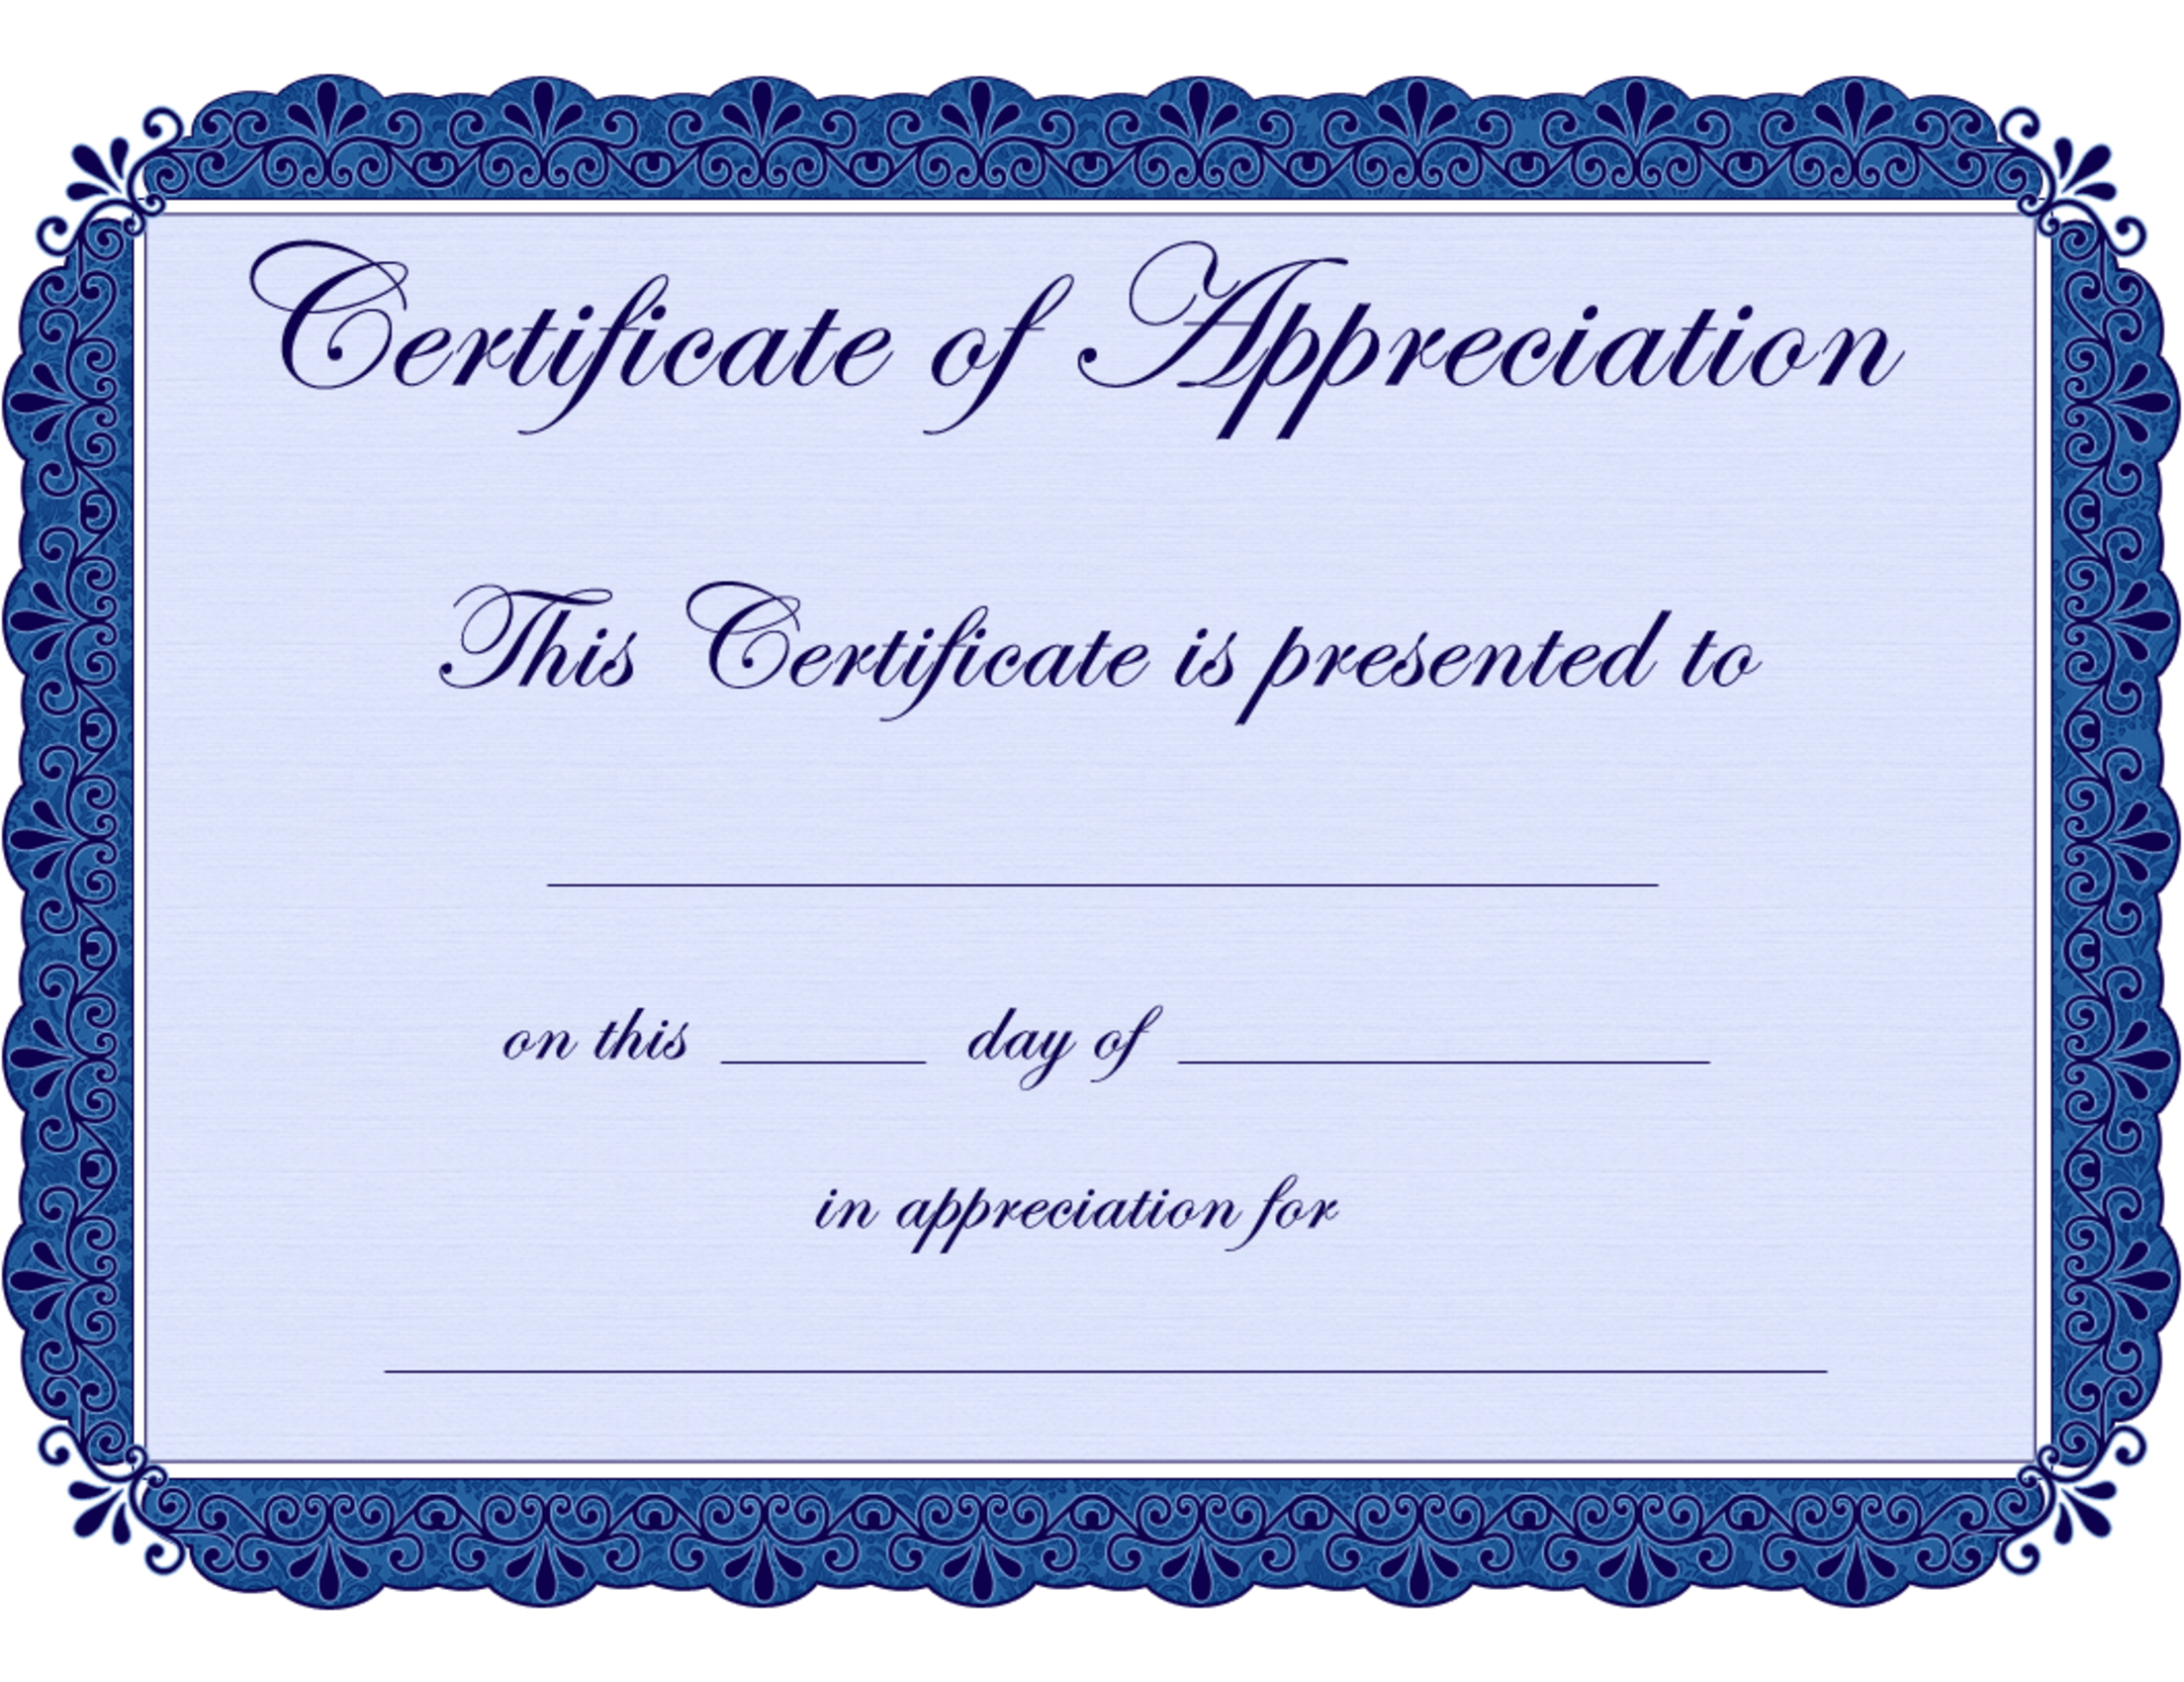 Free Printable Certificates Certificate Of Appreciation Certificate - Free Printable Diploma Template